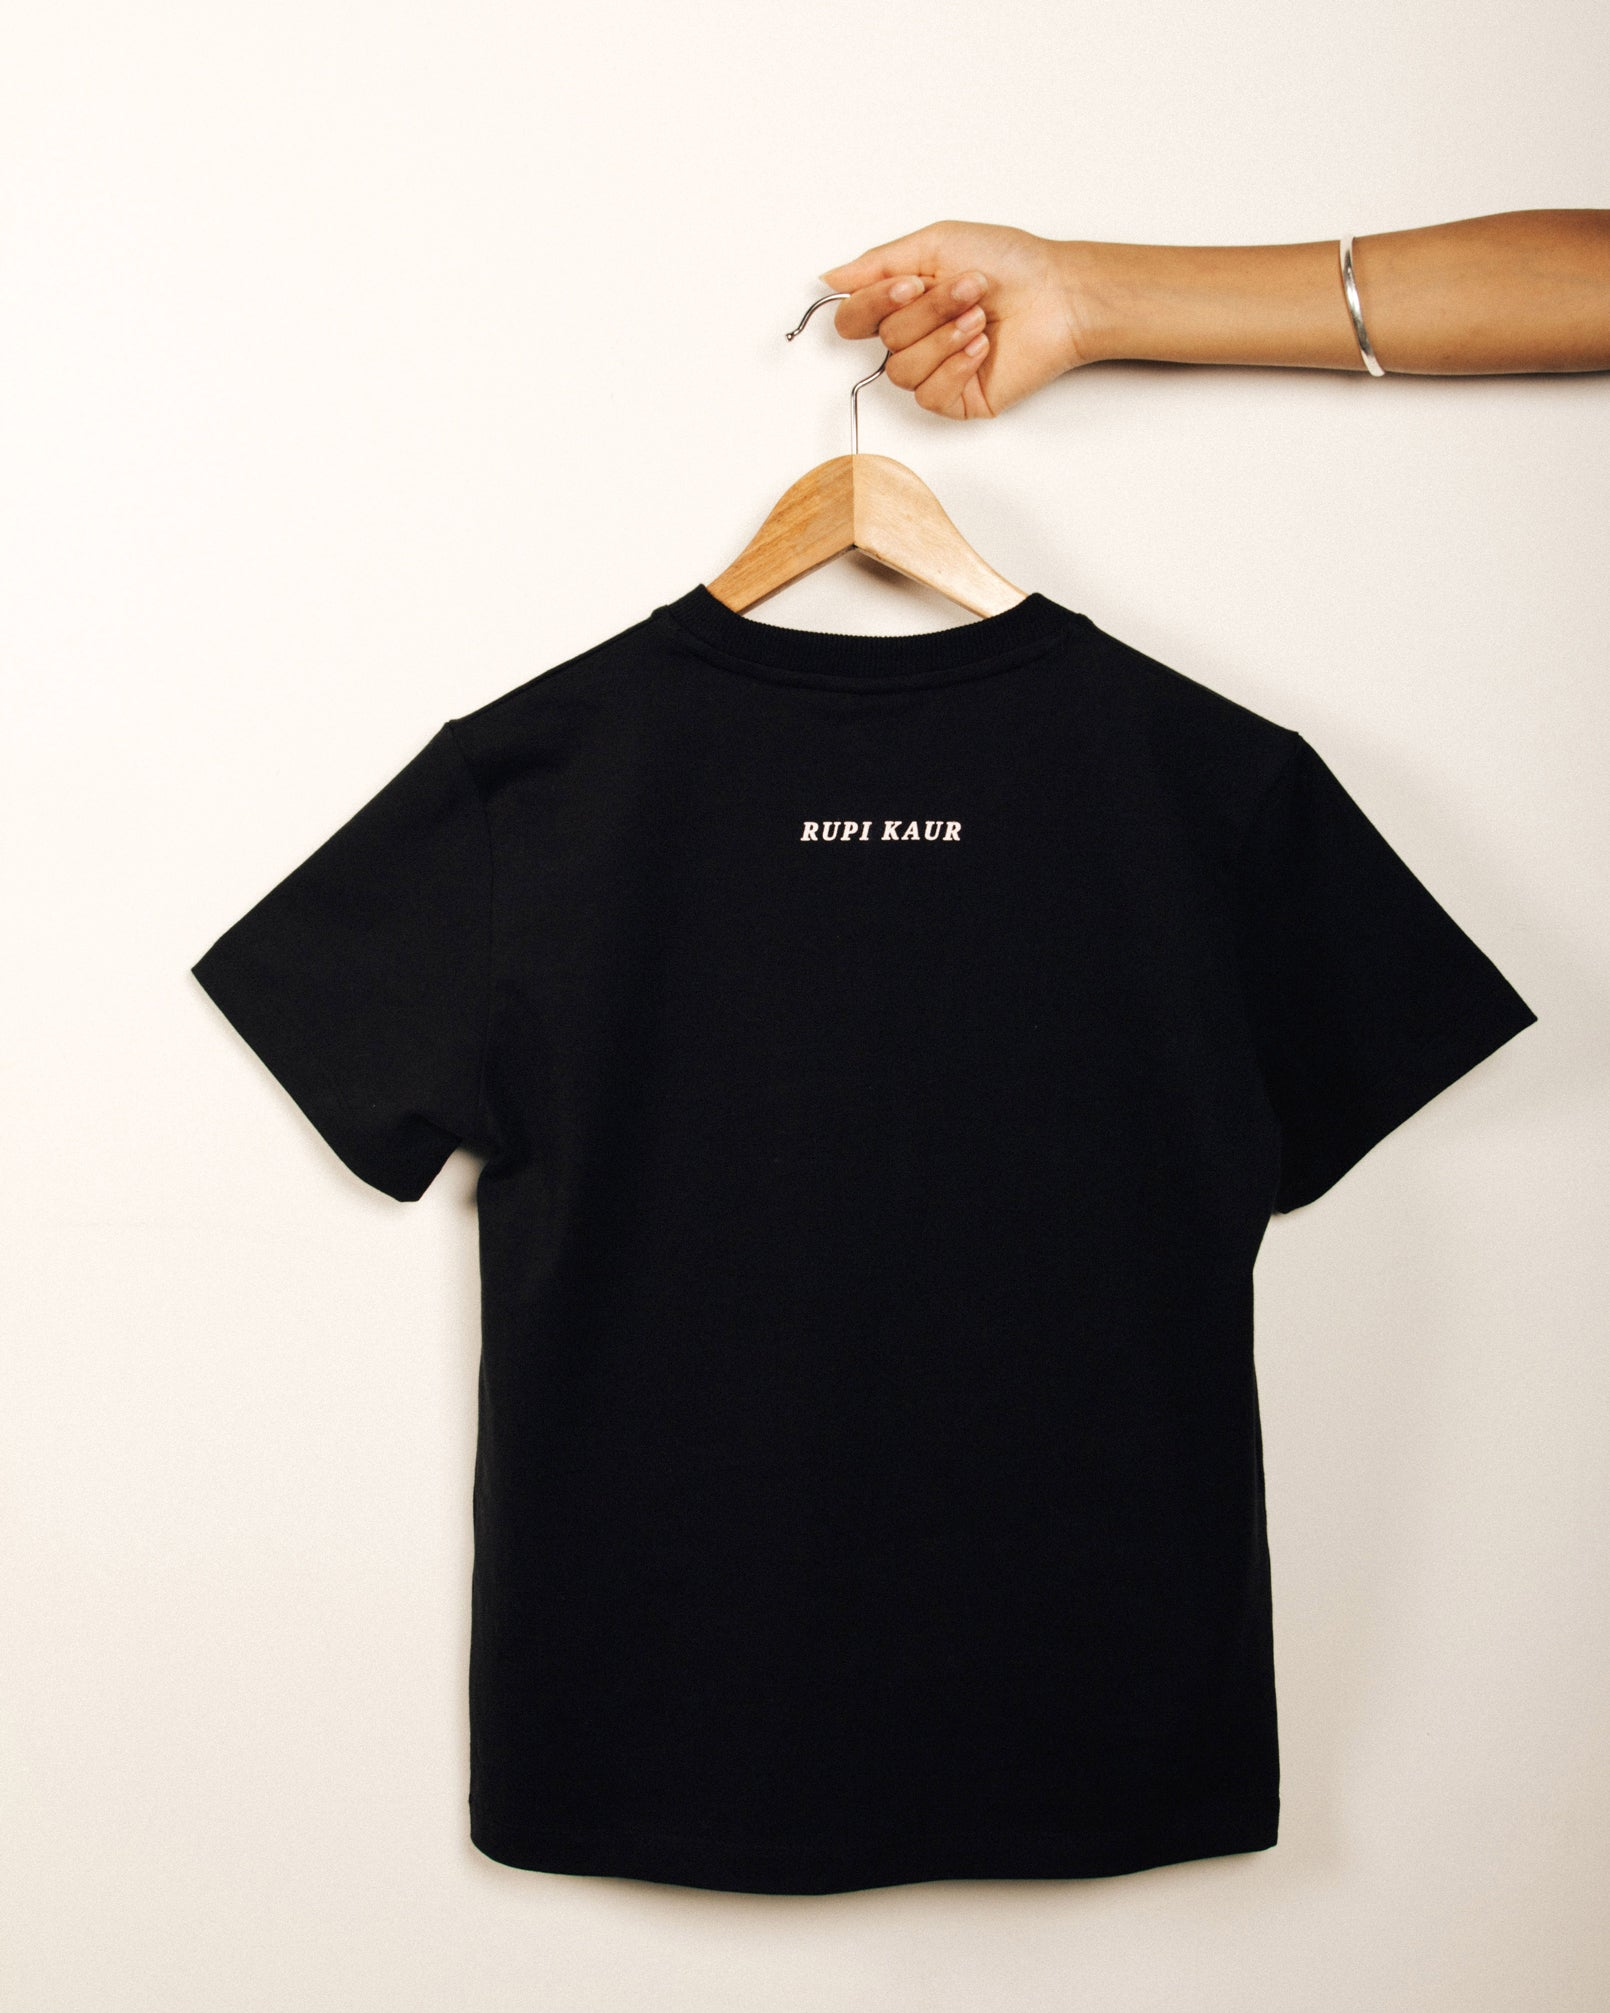 'other women's bodies' Black T-shirt